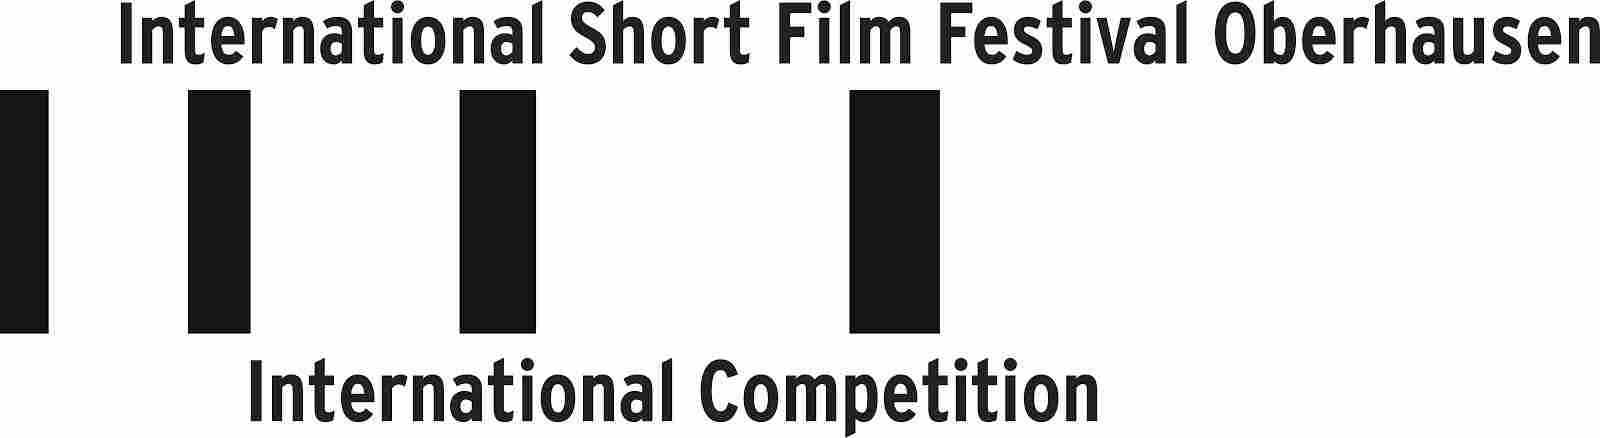 Internatonal Short Film Festival Oberhausen